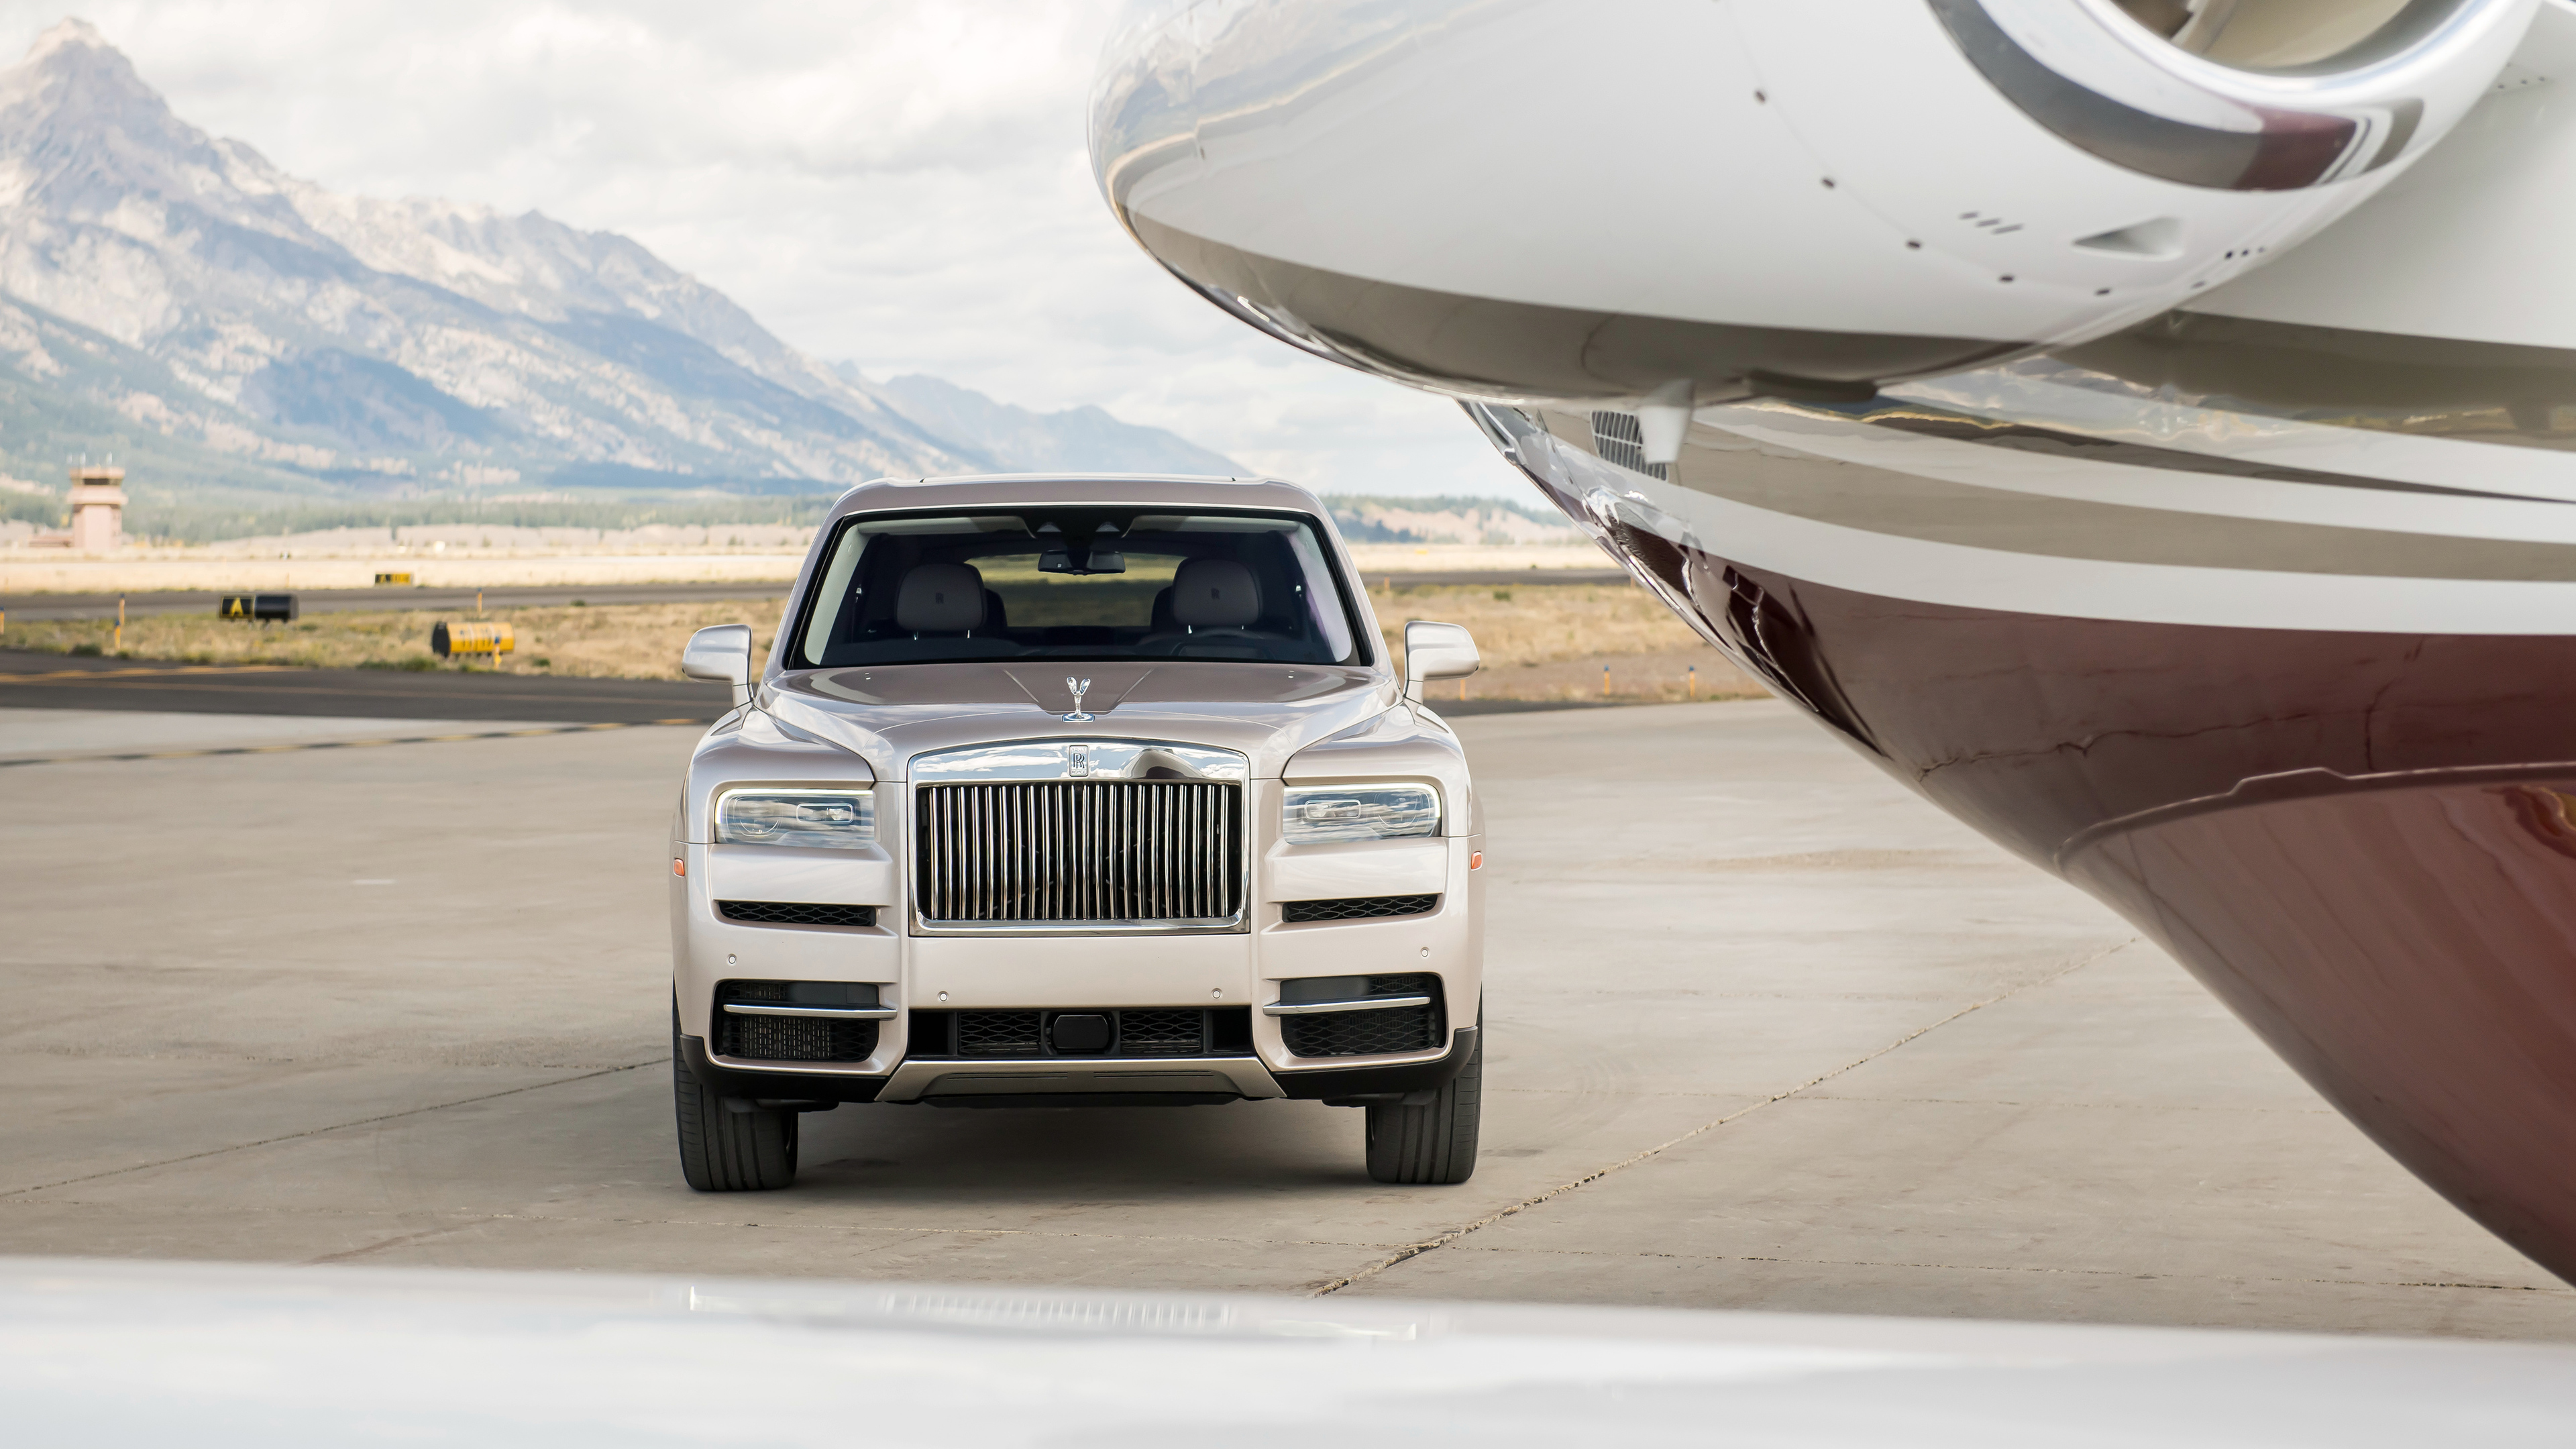 2019 rolls royce cullinan 4k 1539792876 - 2019 Rolls Royce Cullinan 4k - rolls royce wallpapers, rolls royce cullinan wallpapers, hd-wallpapers, cars wallpapers, 4k-wallpapers, 2019 cars wallpapers